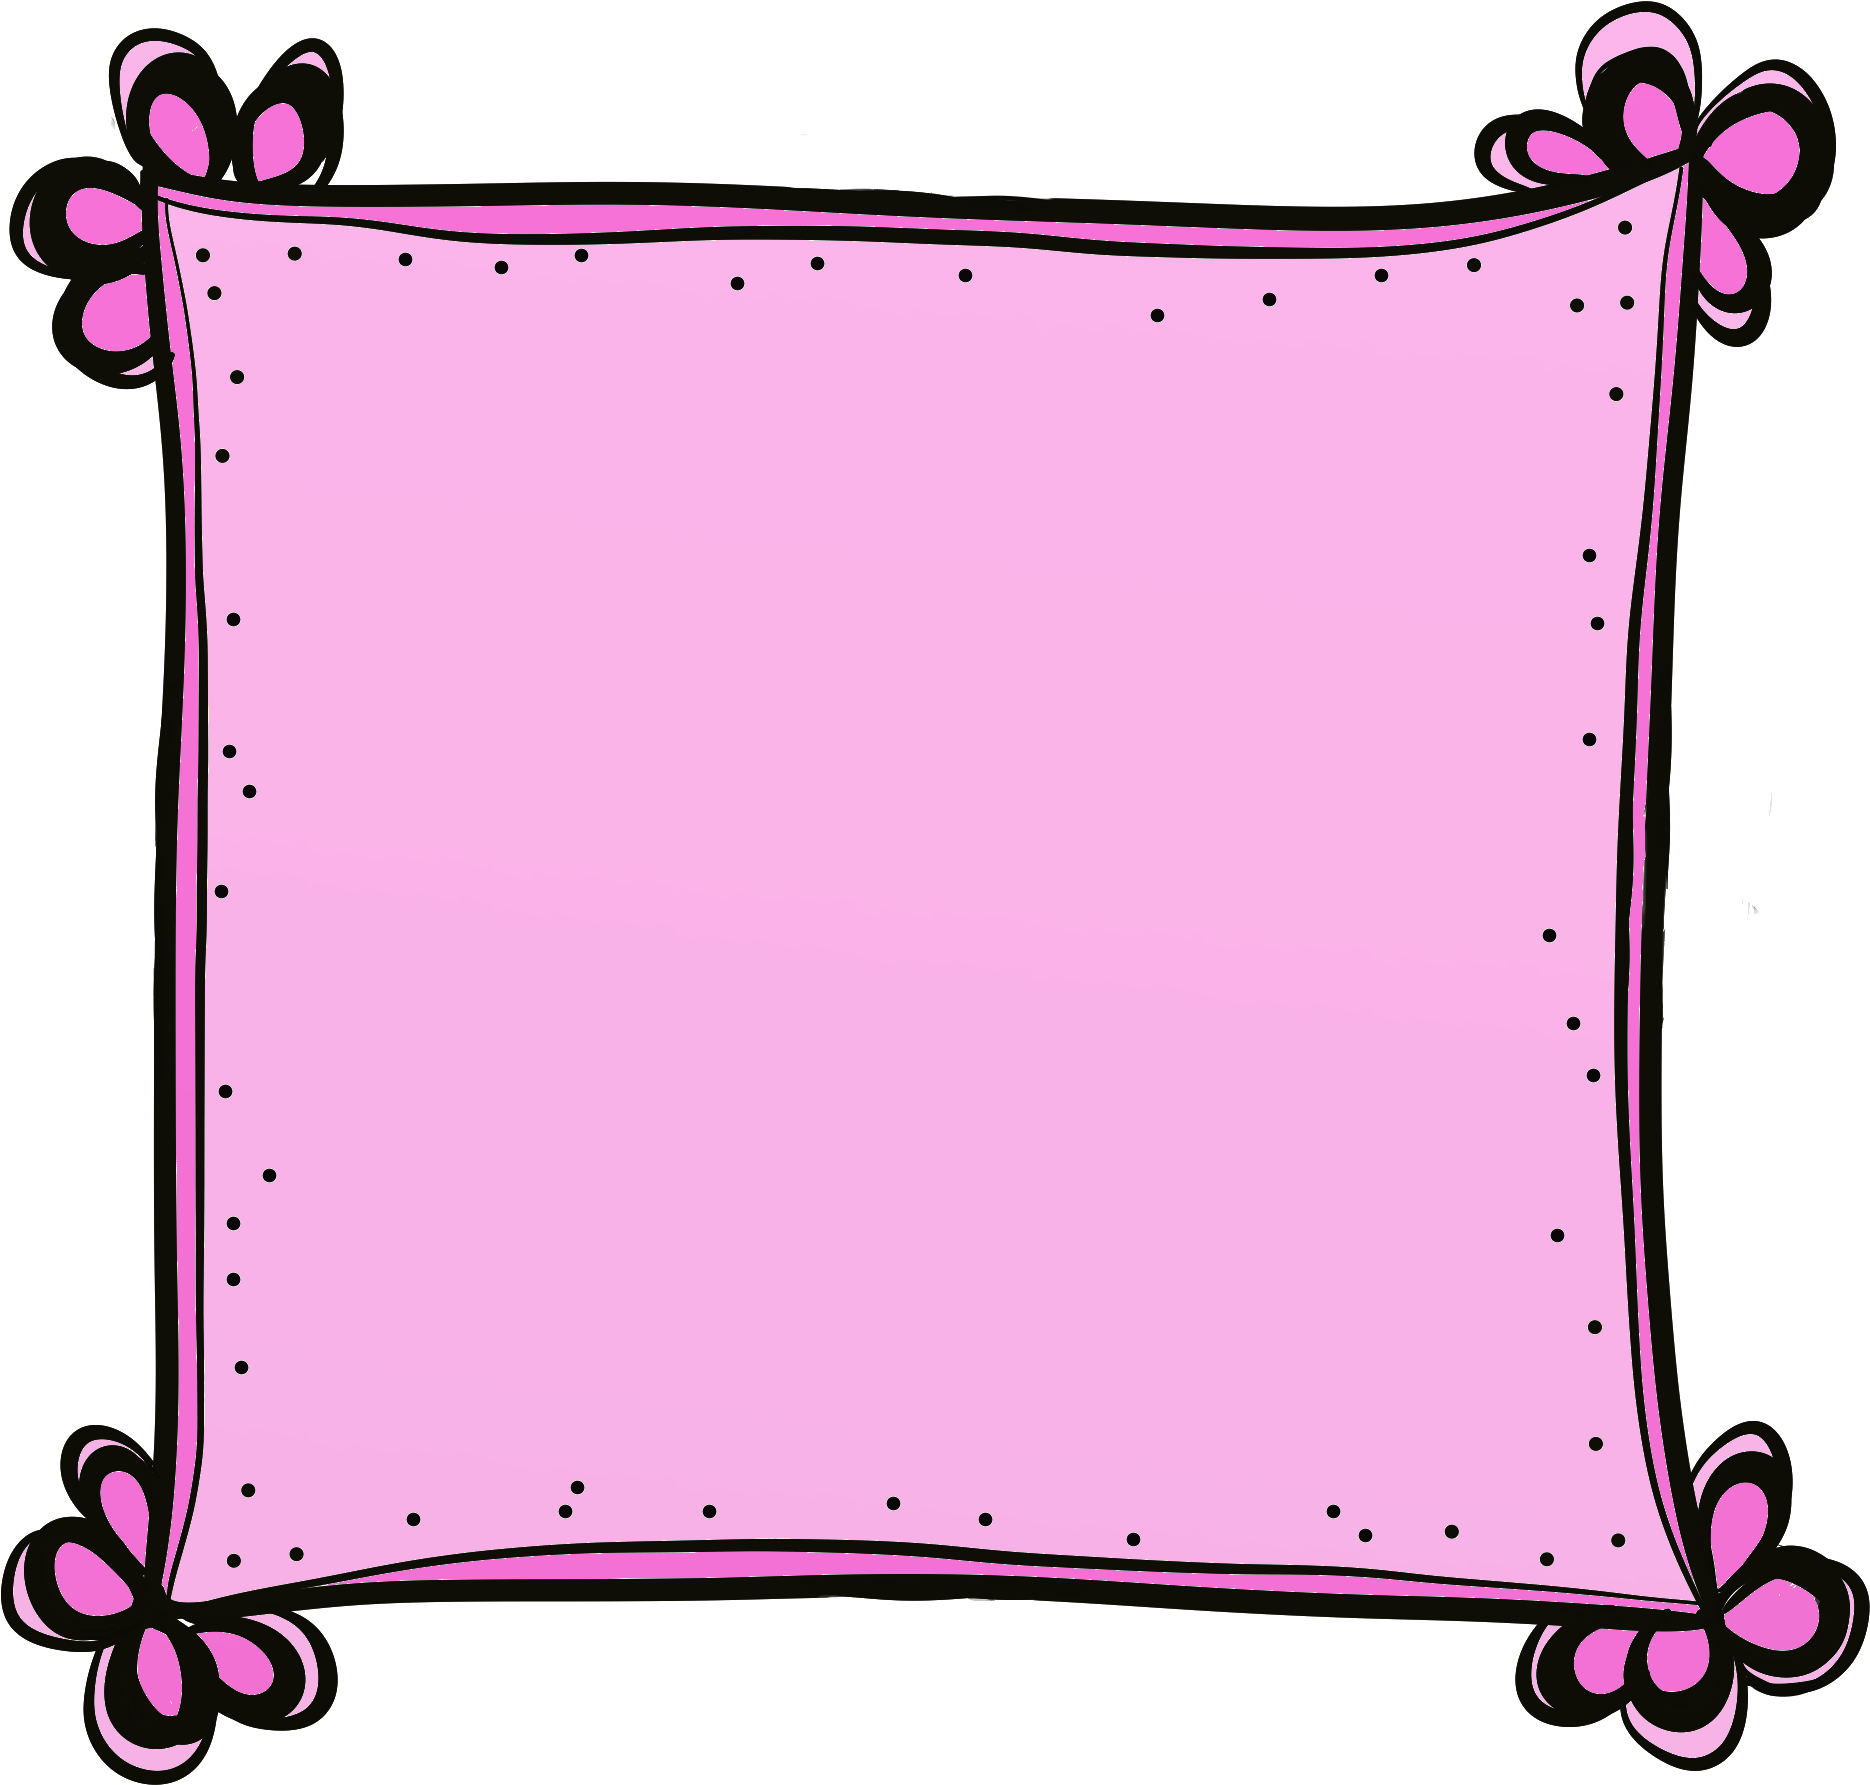 Cute Frames Borders And Frames Art Clipart Free.